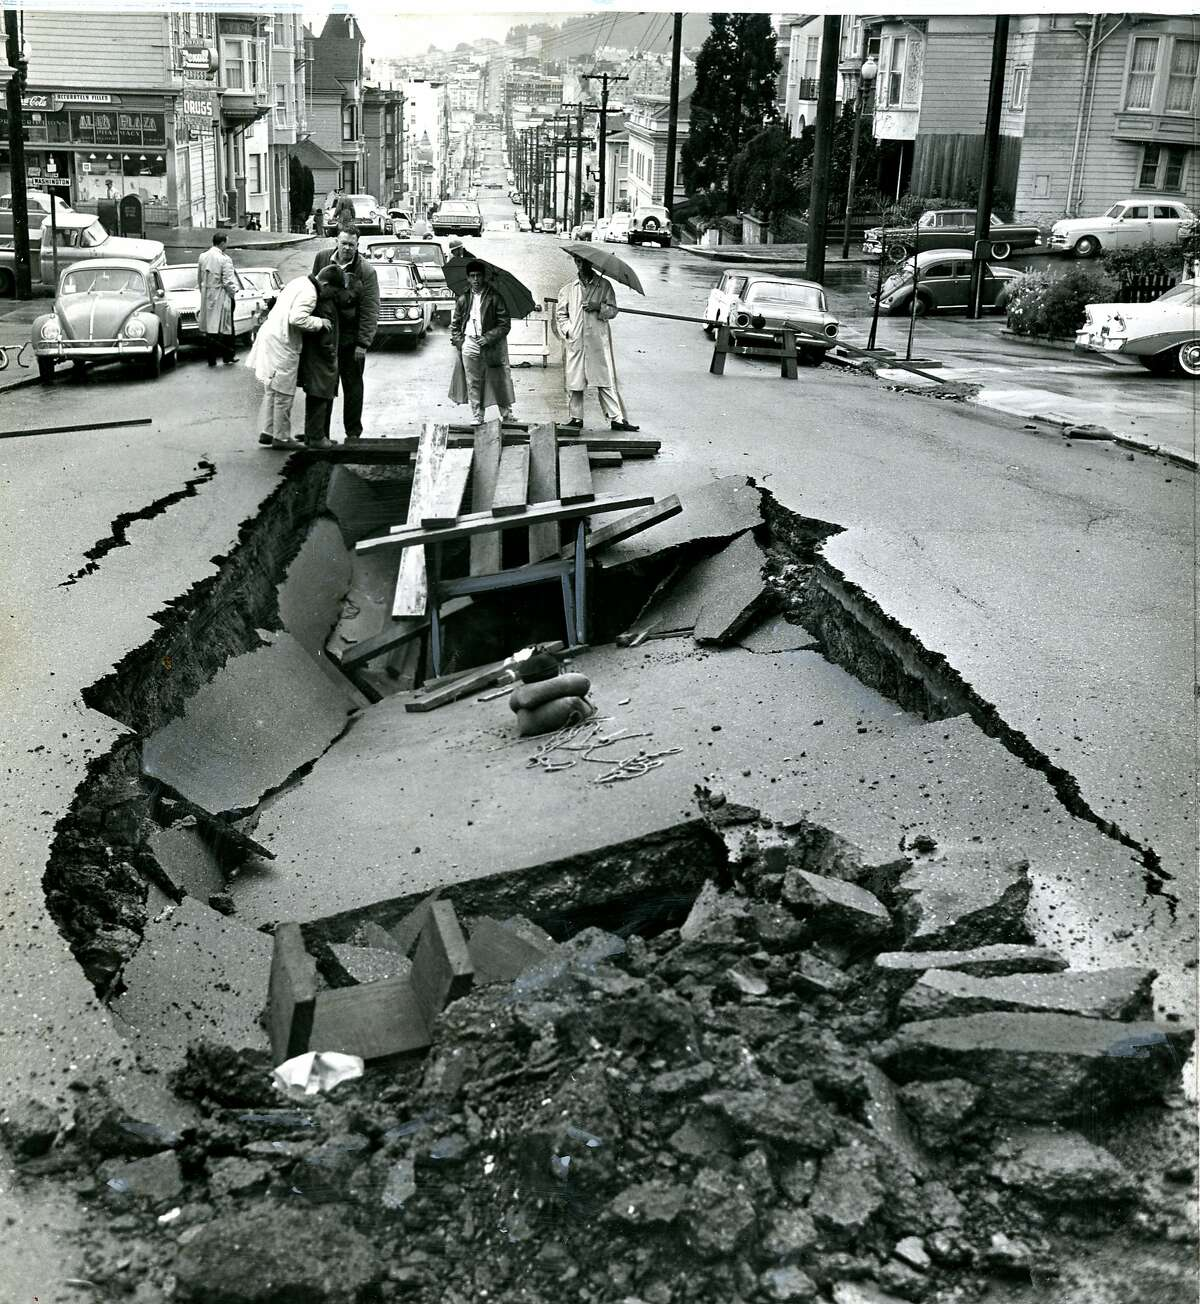 April 7, 1963: A large sinkhole appeared on Broderick Street, between Washington and Jackson Streets in San Francisco.